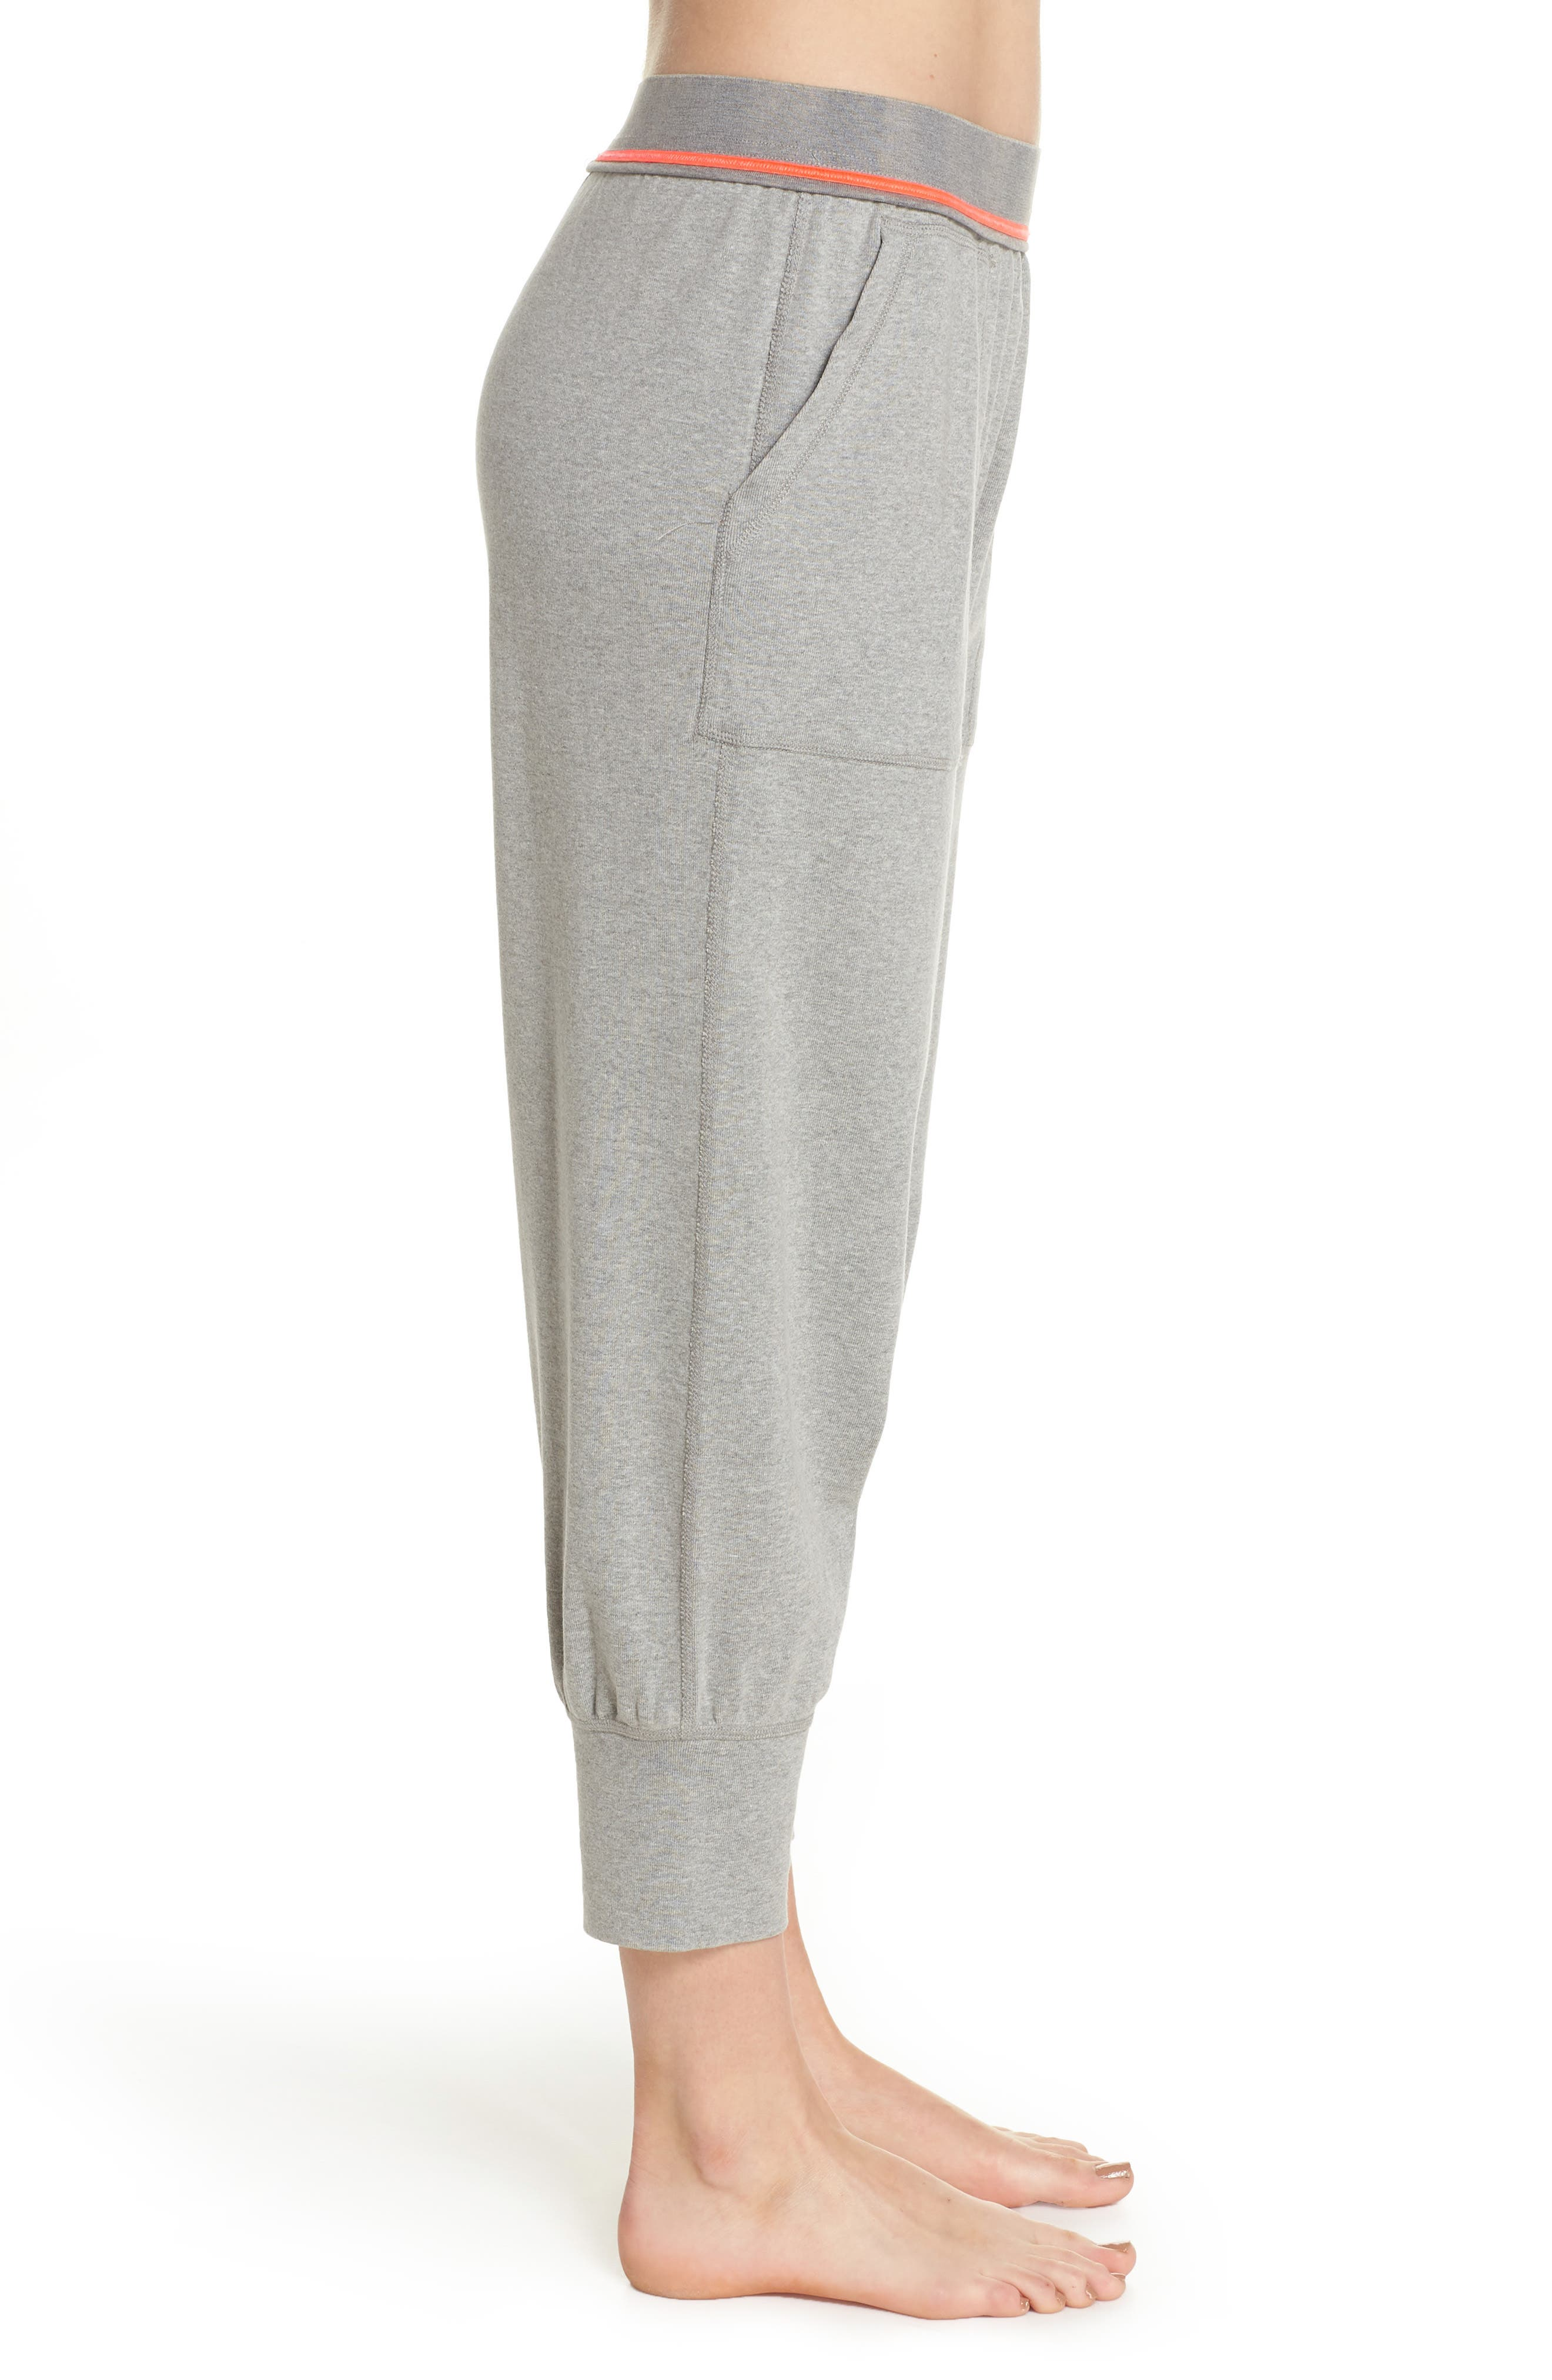 FREE PEOPLE MOVEMENT,                             Jordan Sweatpants,                             Alternate thumbnail 4, color,                             030